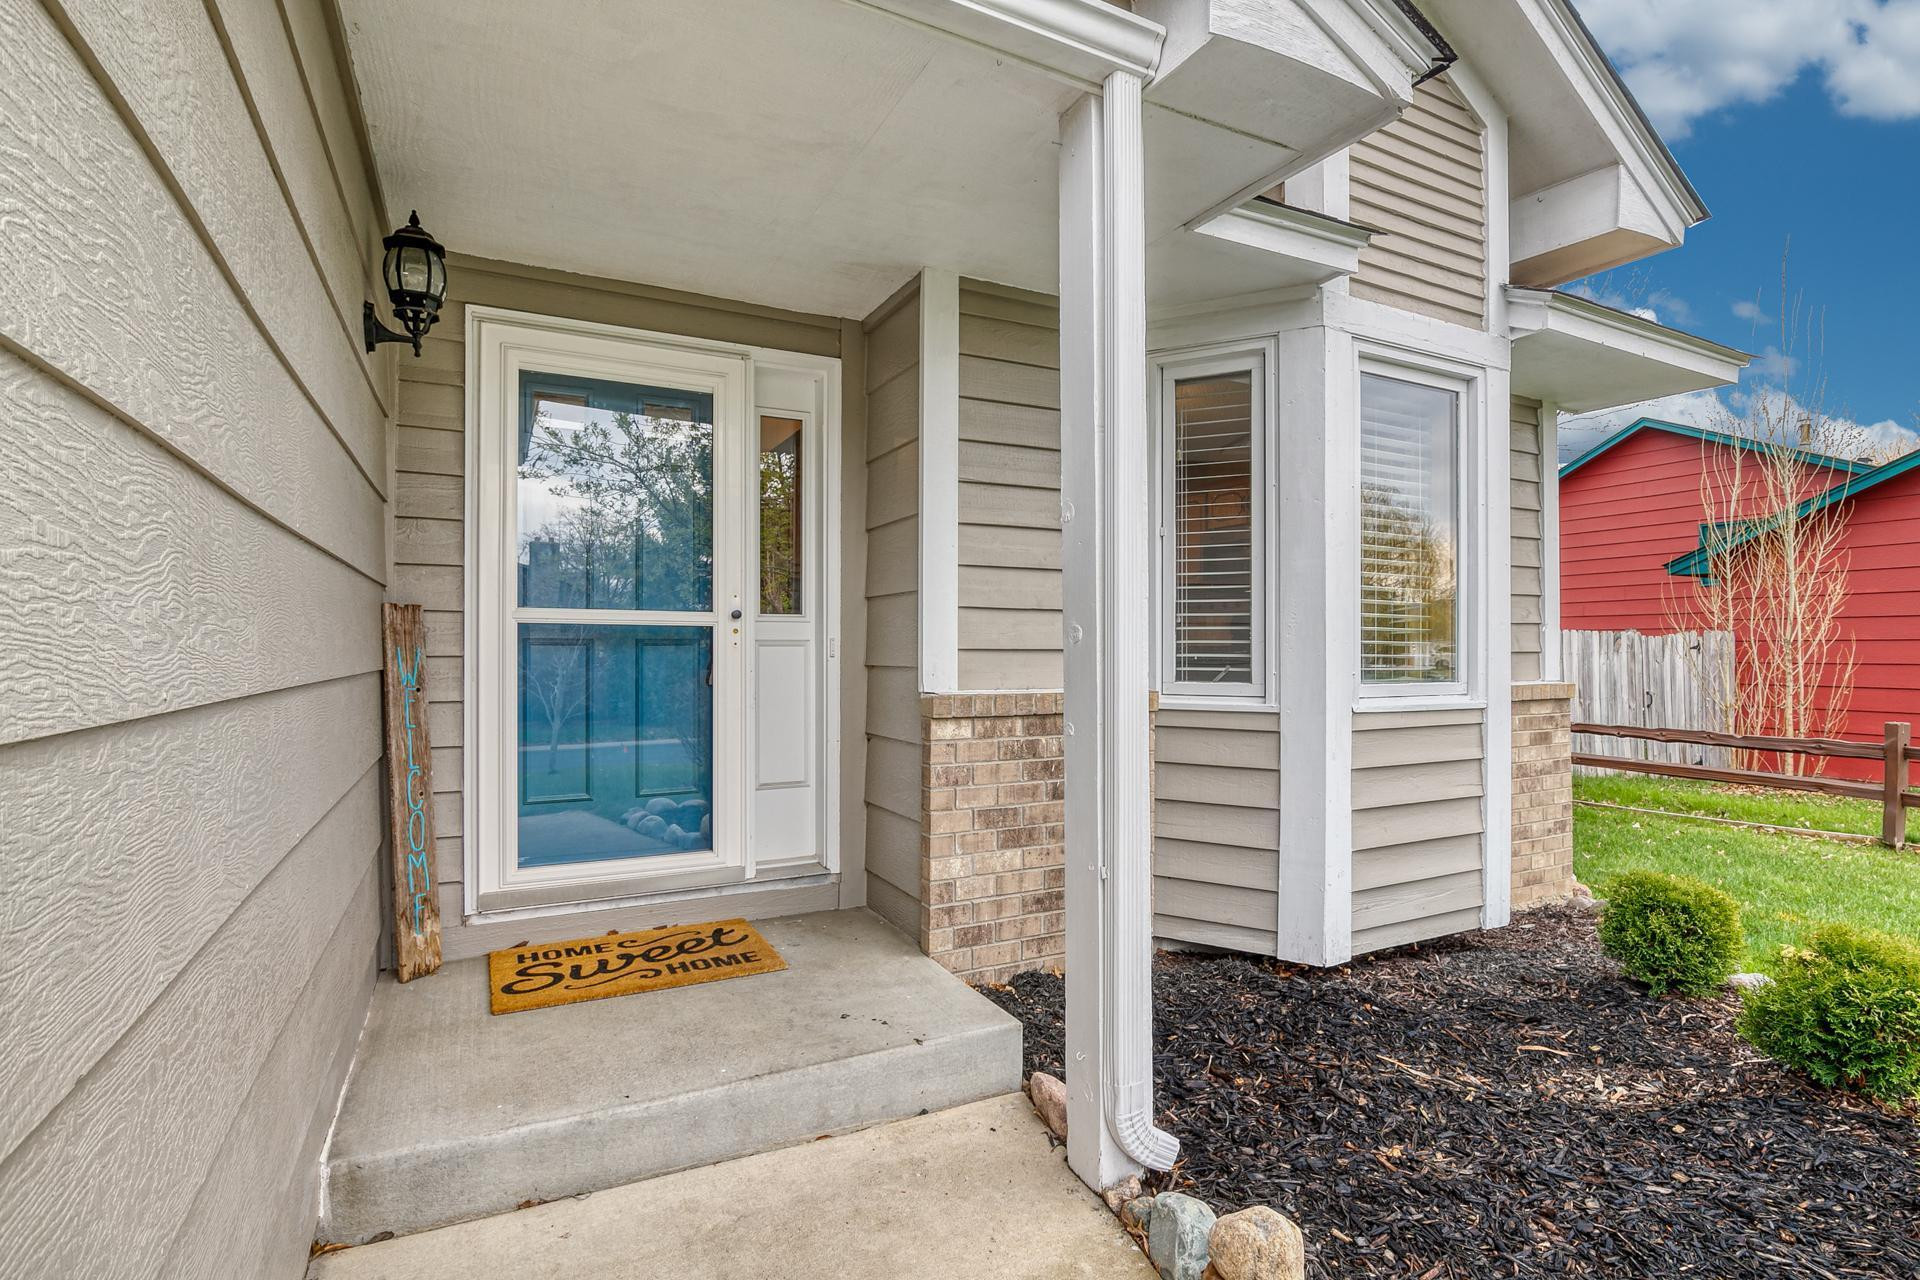 Welcome home! Impress your guests with this updated and inviting front entry